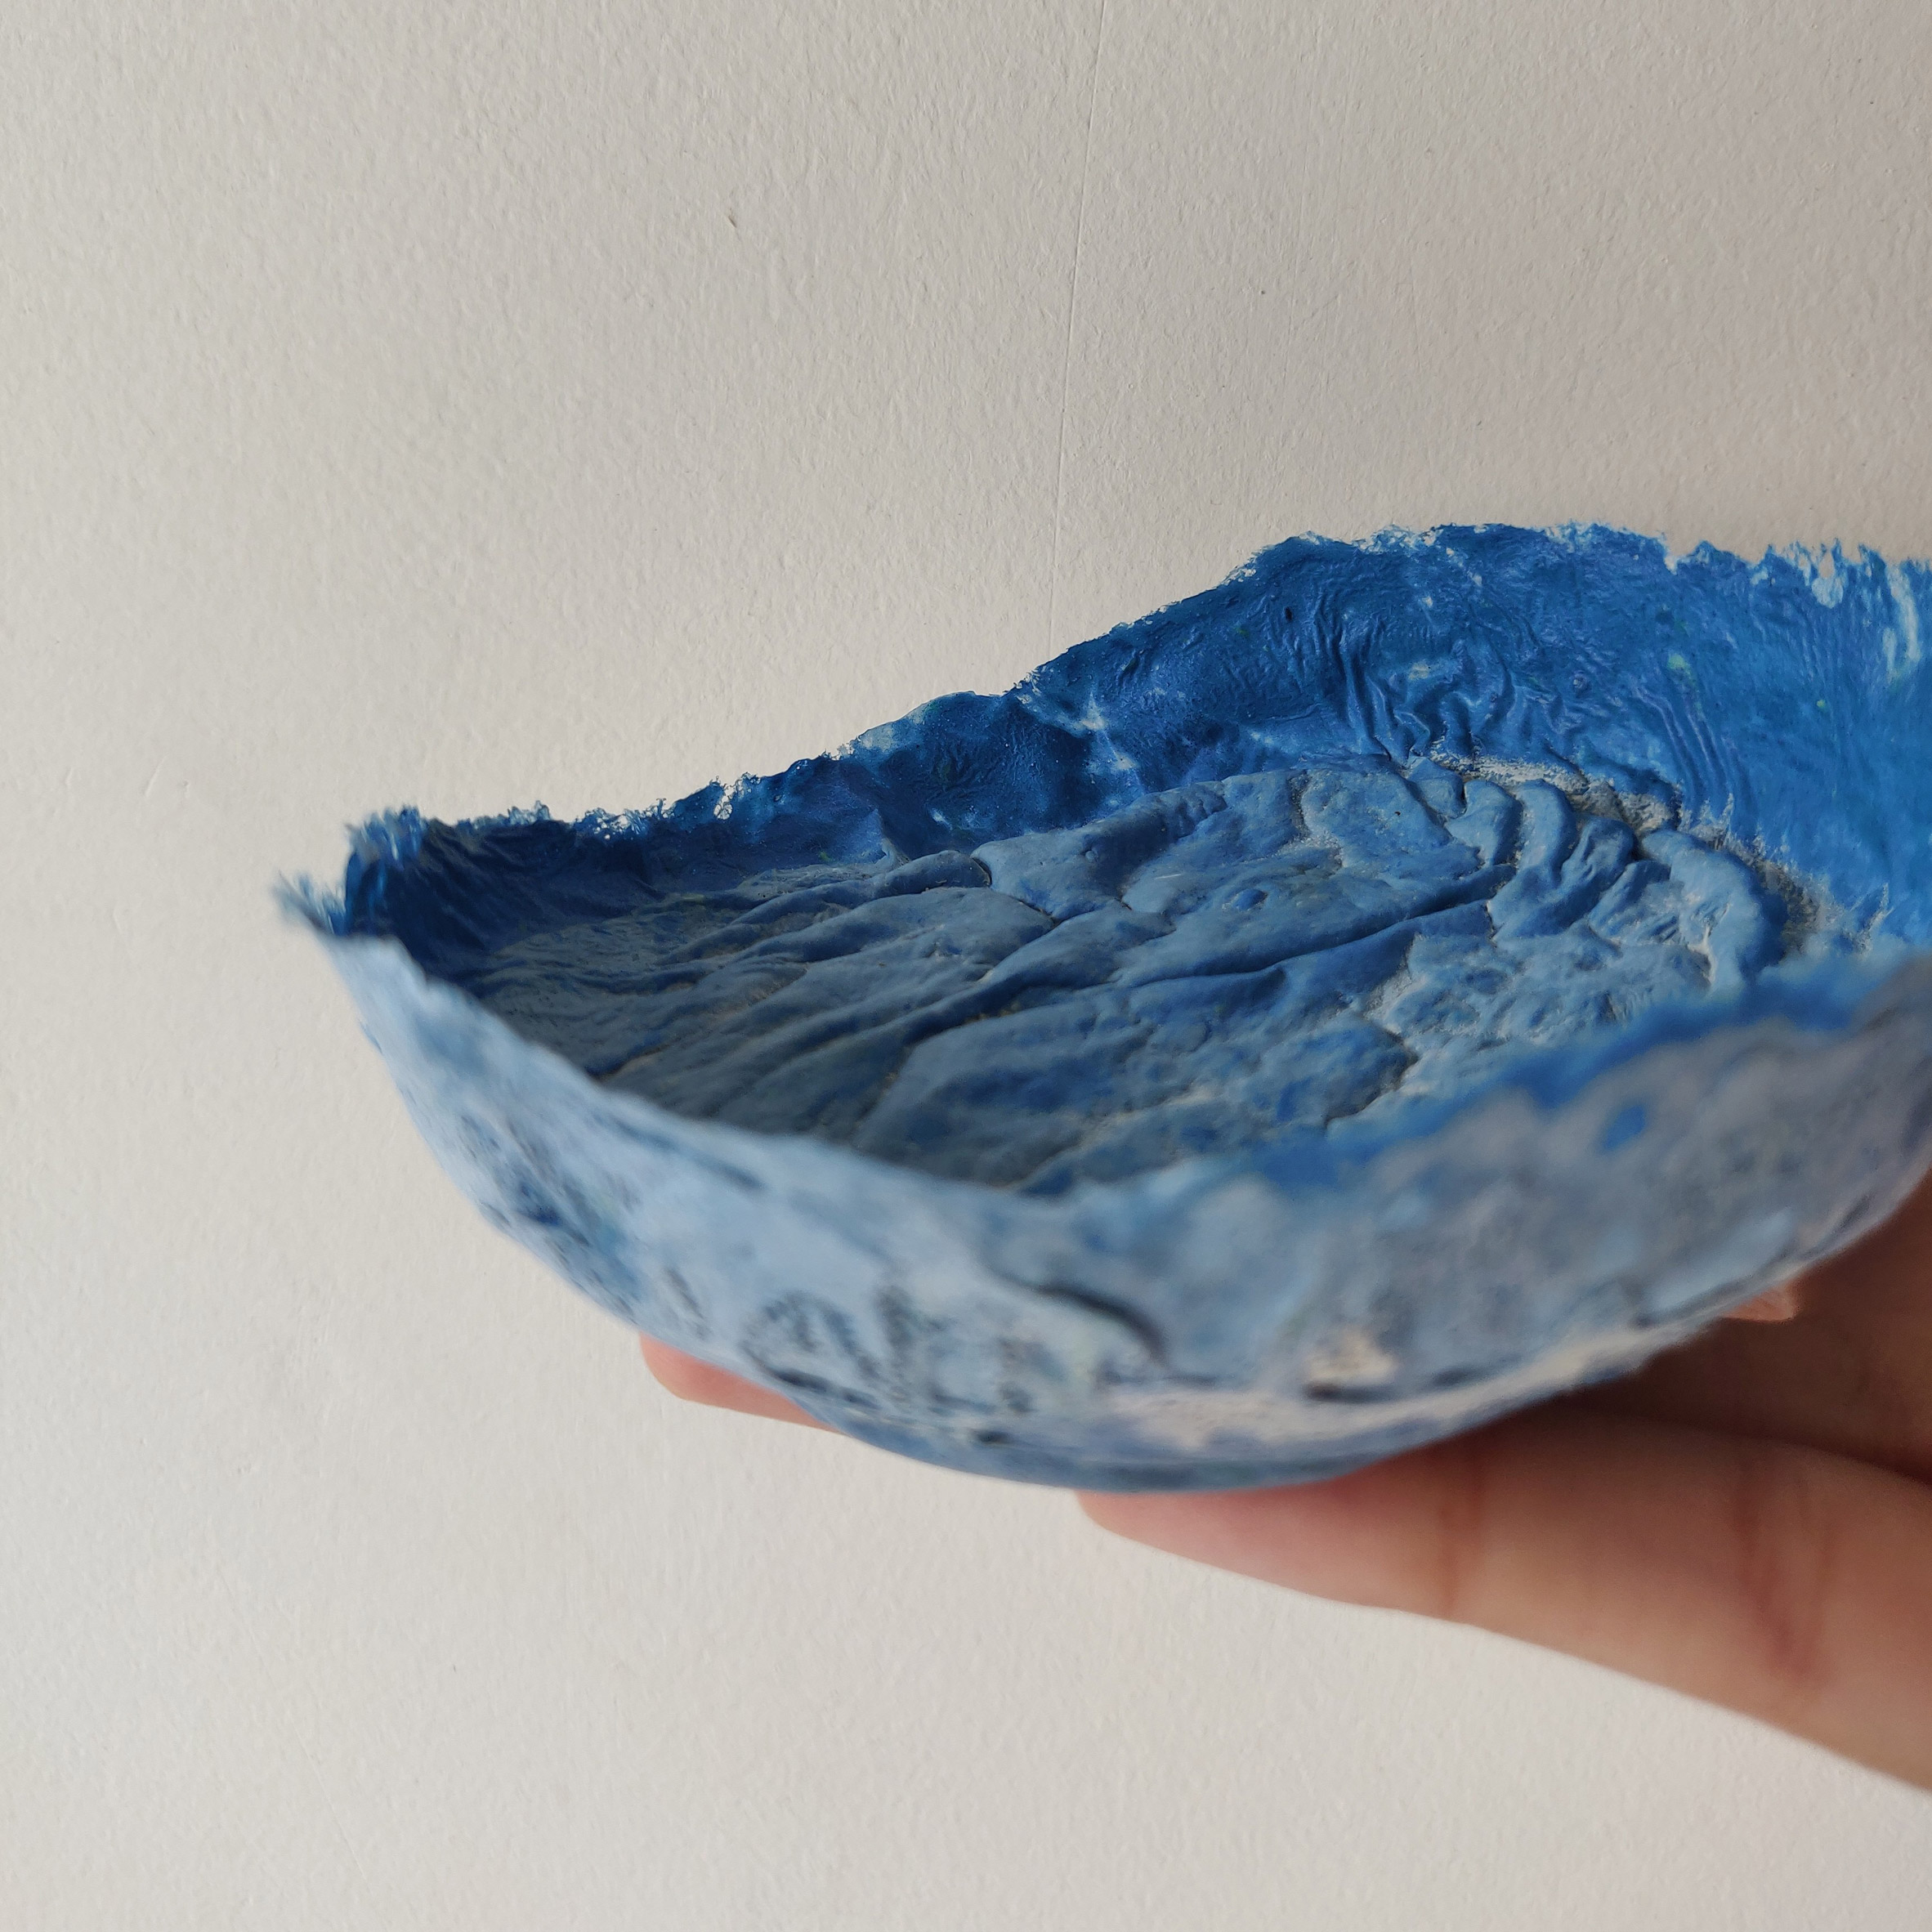 Blue bowl from the Jugaad collection